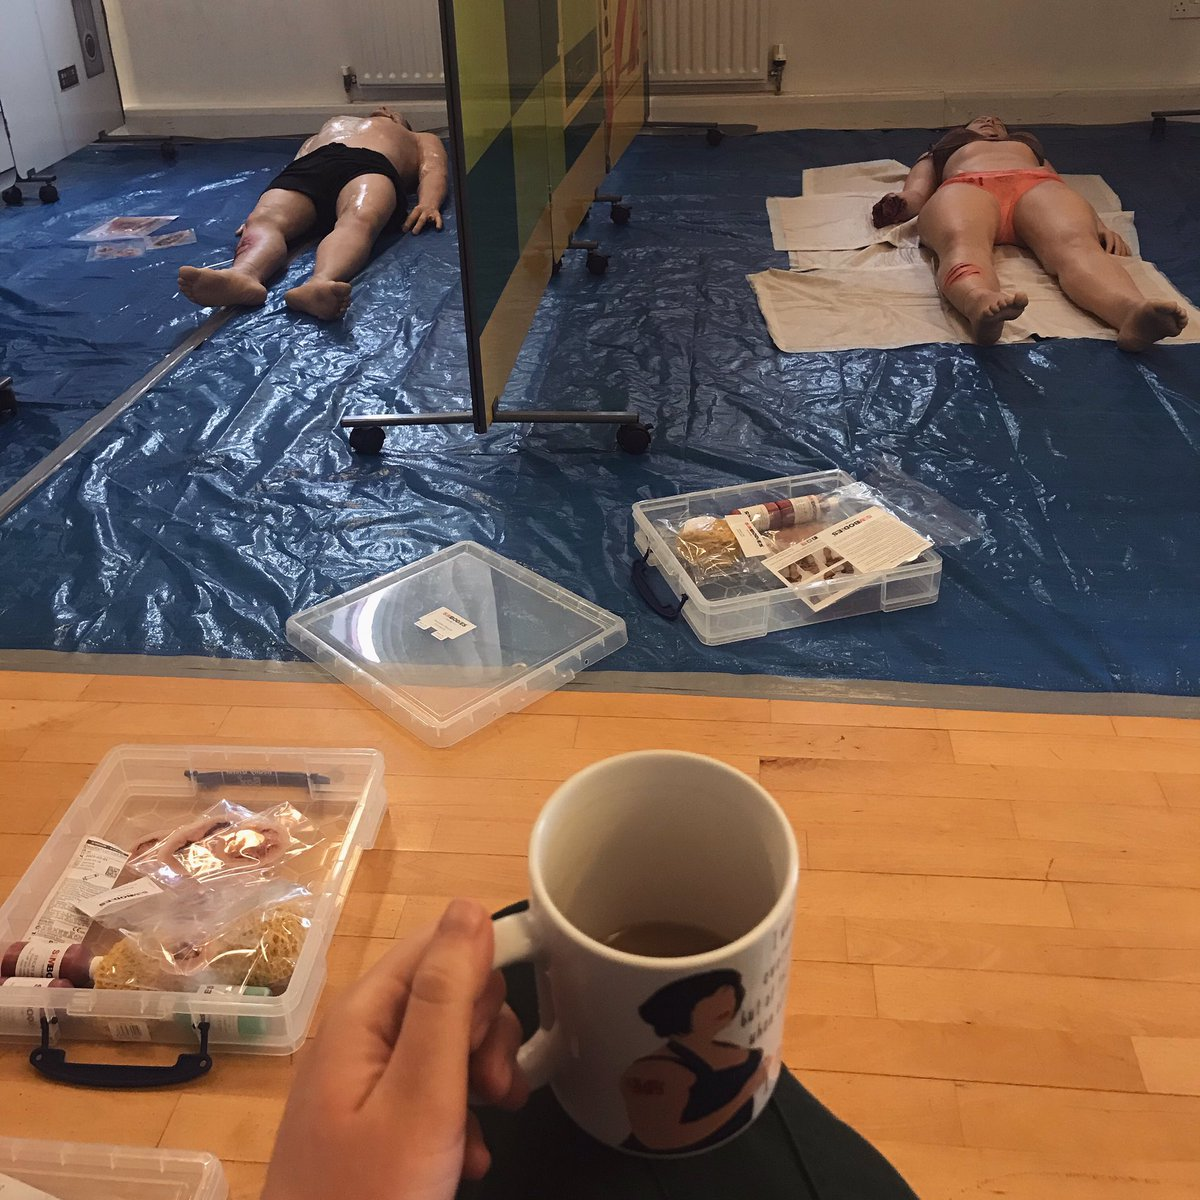 Prepping for another #simulation day. Cuppa in hand whilst I wait for the liquid latex to dry. ✌🏻🚑 #simulationtraining #trauma #simbodies https://t.co/22ojgZhtqe